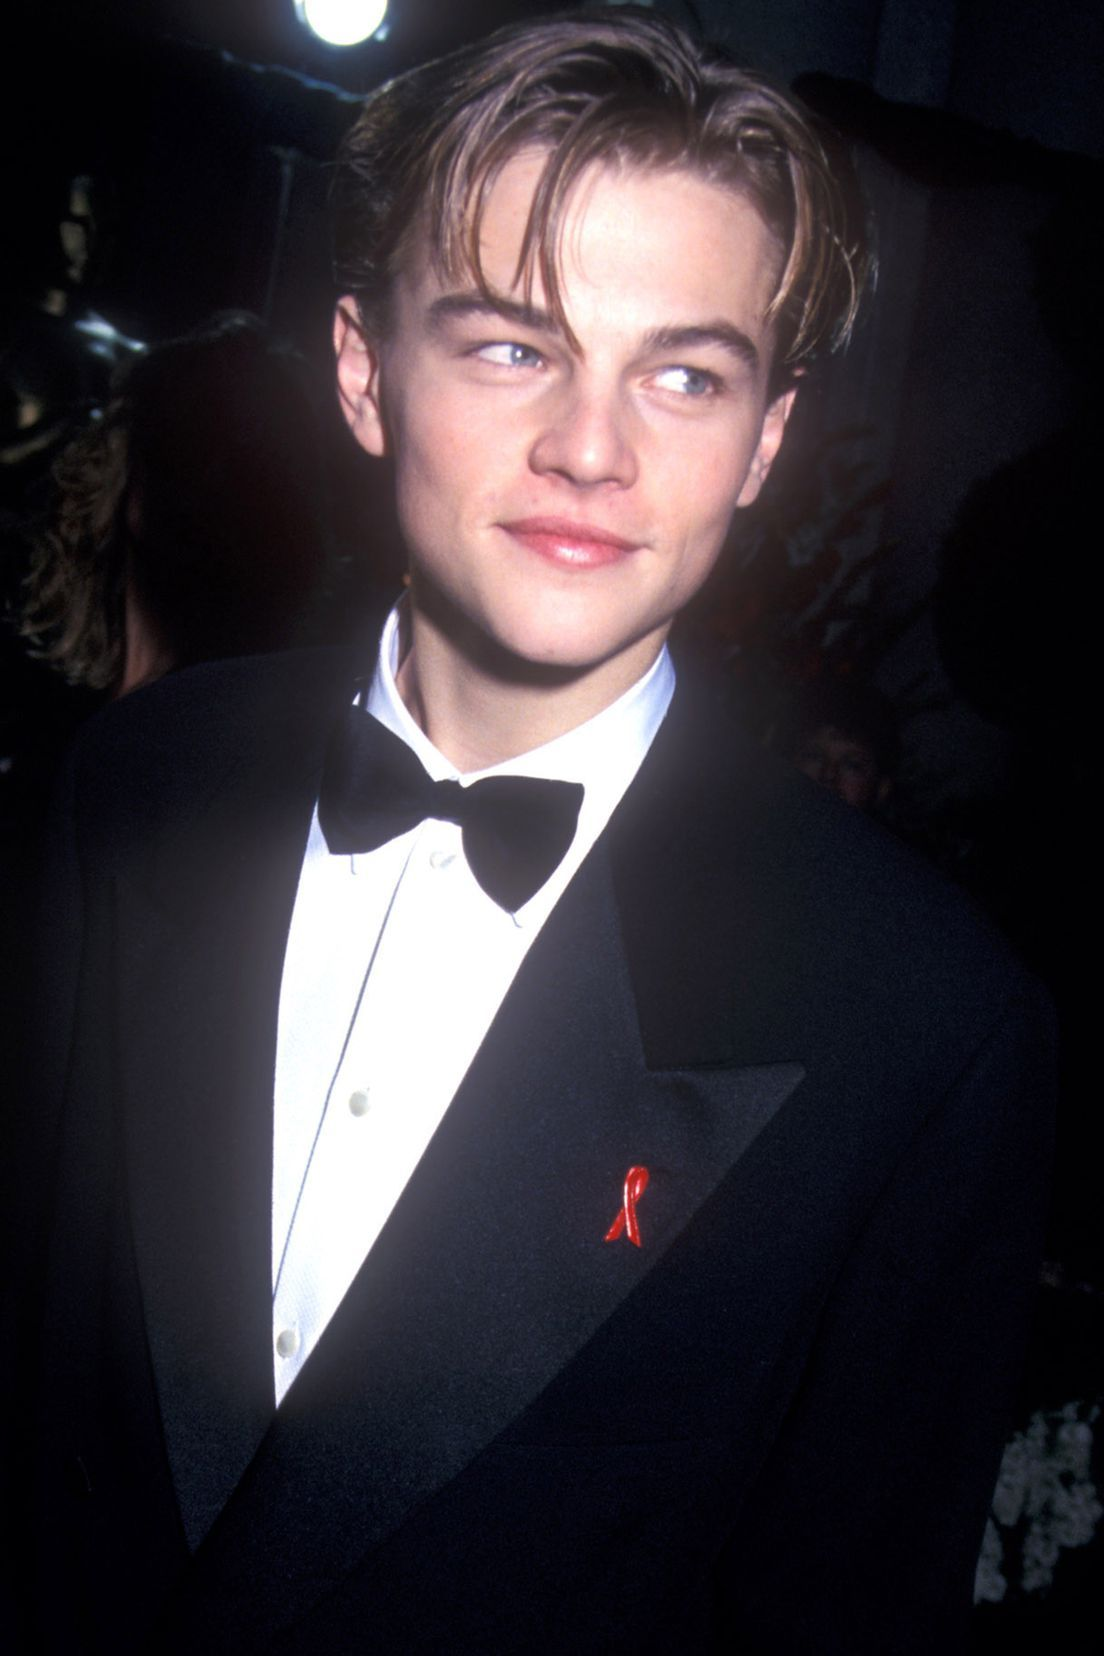 Leonardo DiCaprio's Look Has Evolved Since His Days On 'Growing Pains'